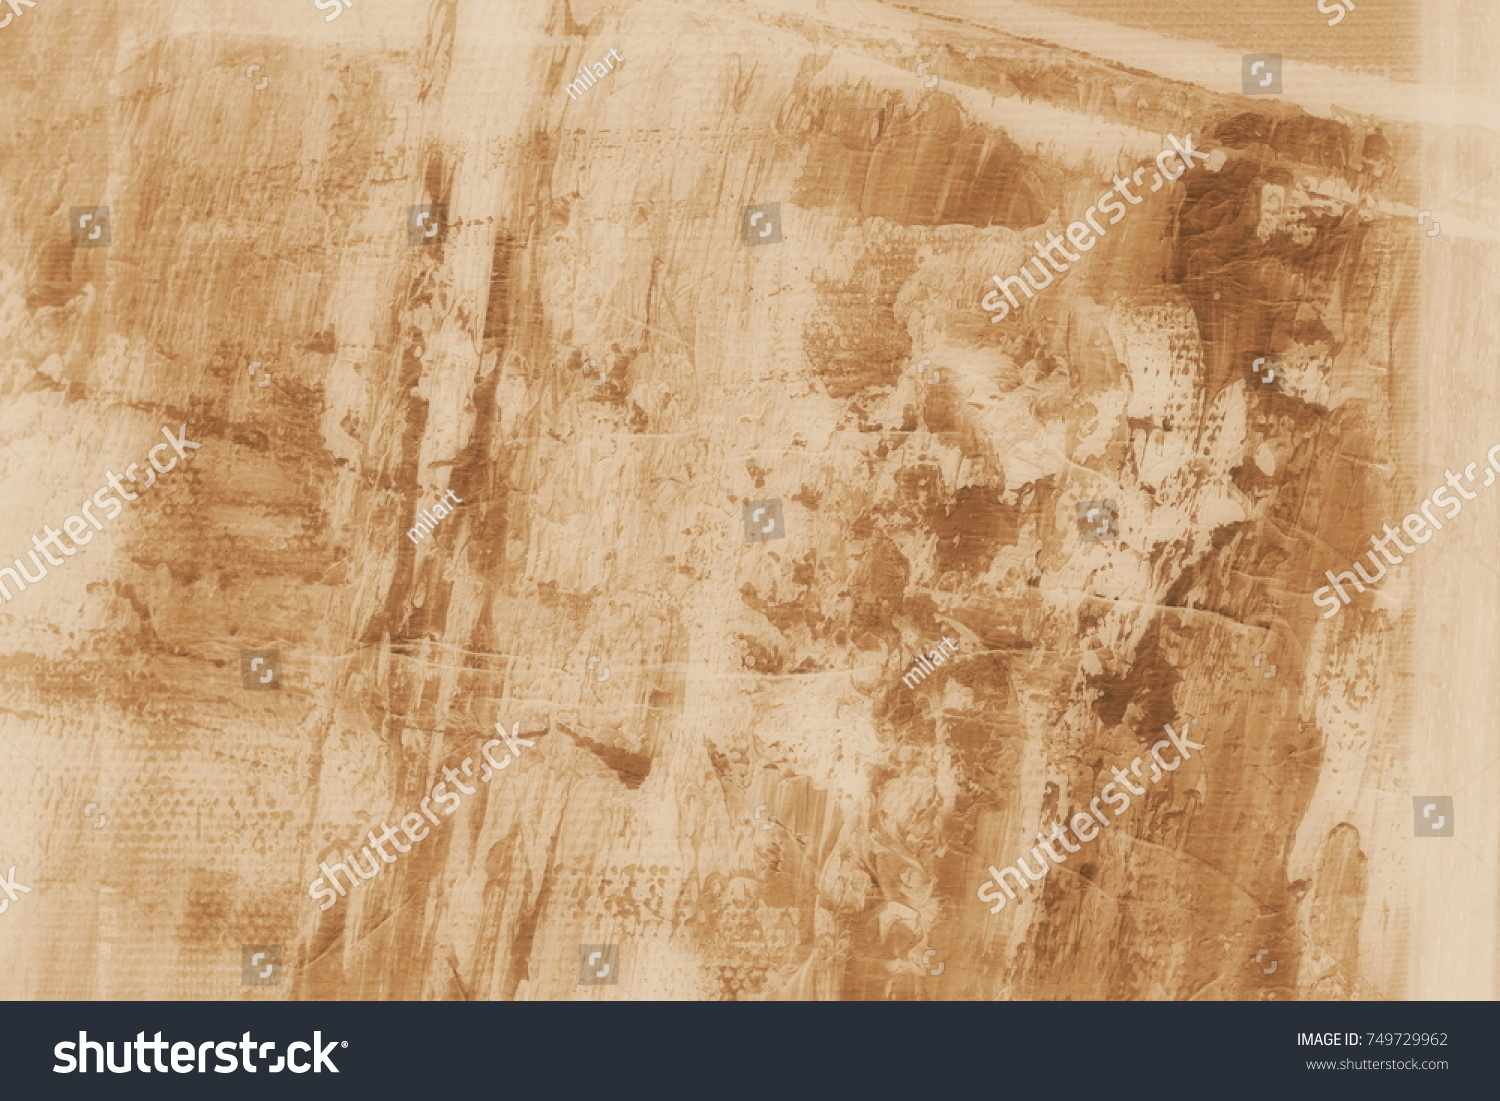 Cool Wallpaper Marble Wood - stock-photo-creative-abstract-hand-painted-background-wallpaper-texture-abstract-composition-for-design-749729962  HD_259296.jpg